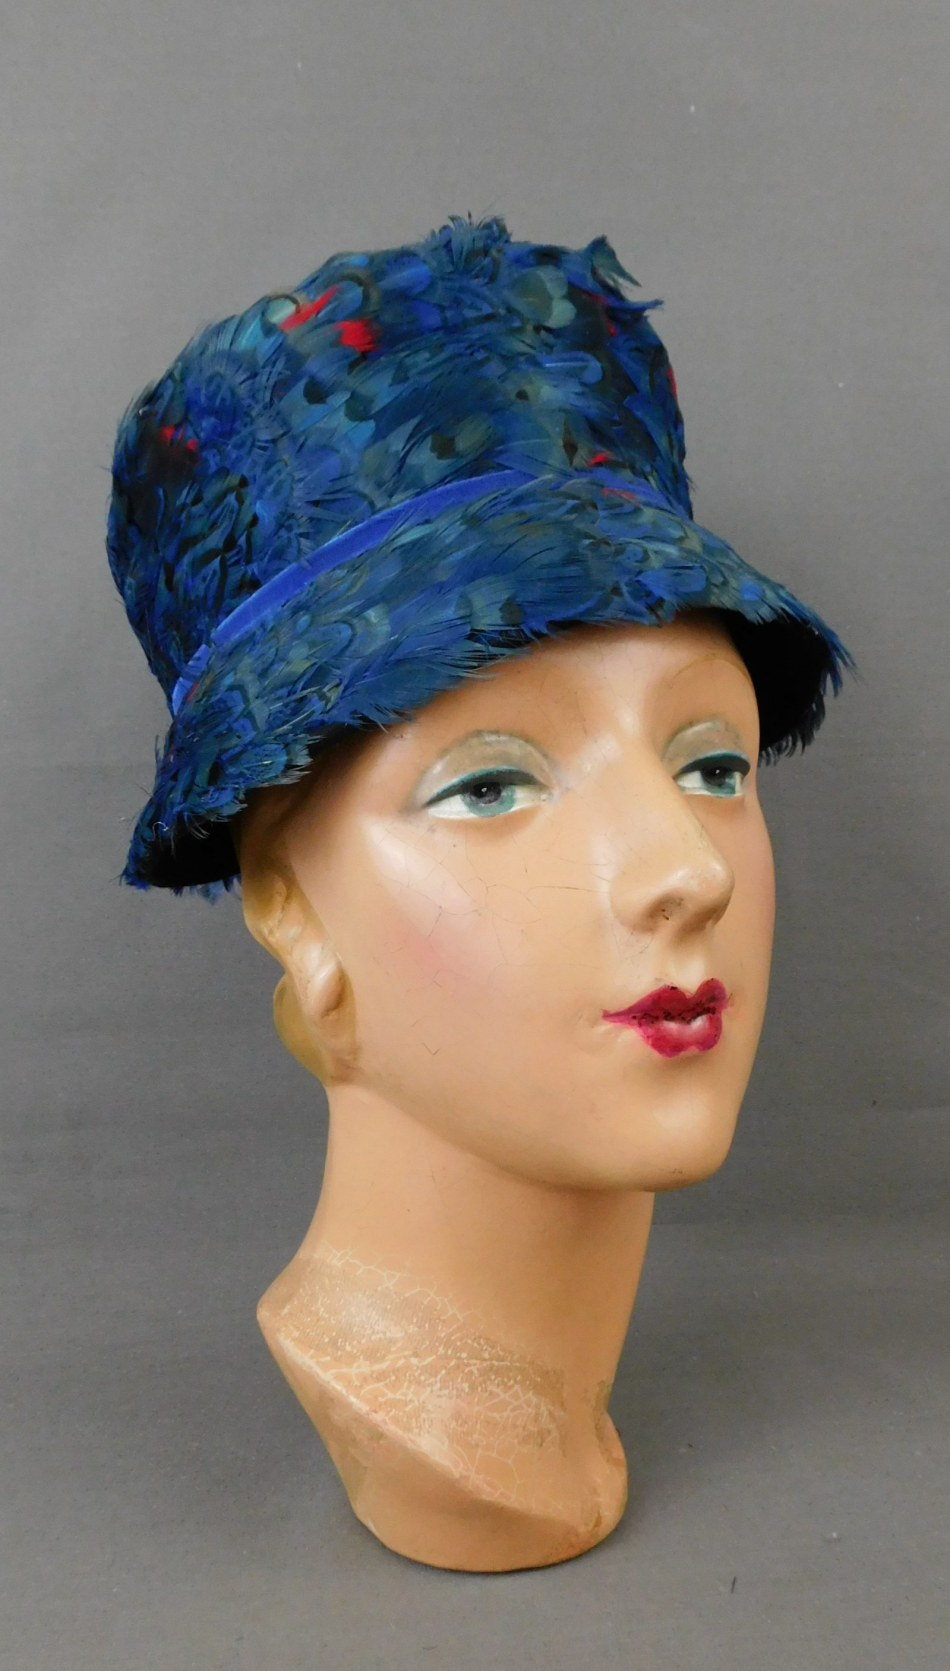 Vintage Blue Peasant Feather Bucket Hat with Red Feathers, 1960s 21 inch head, Christine Original